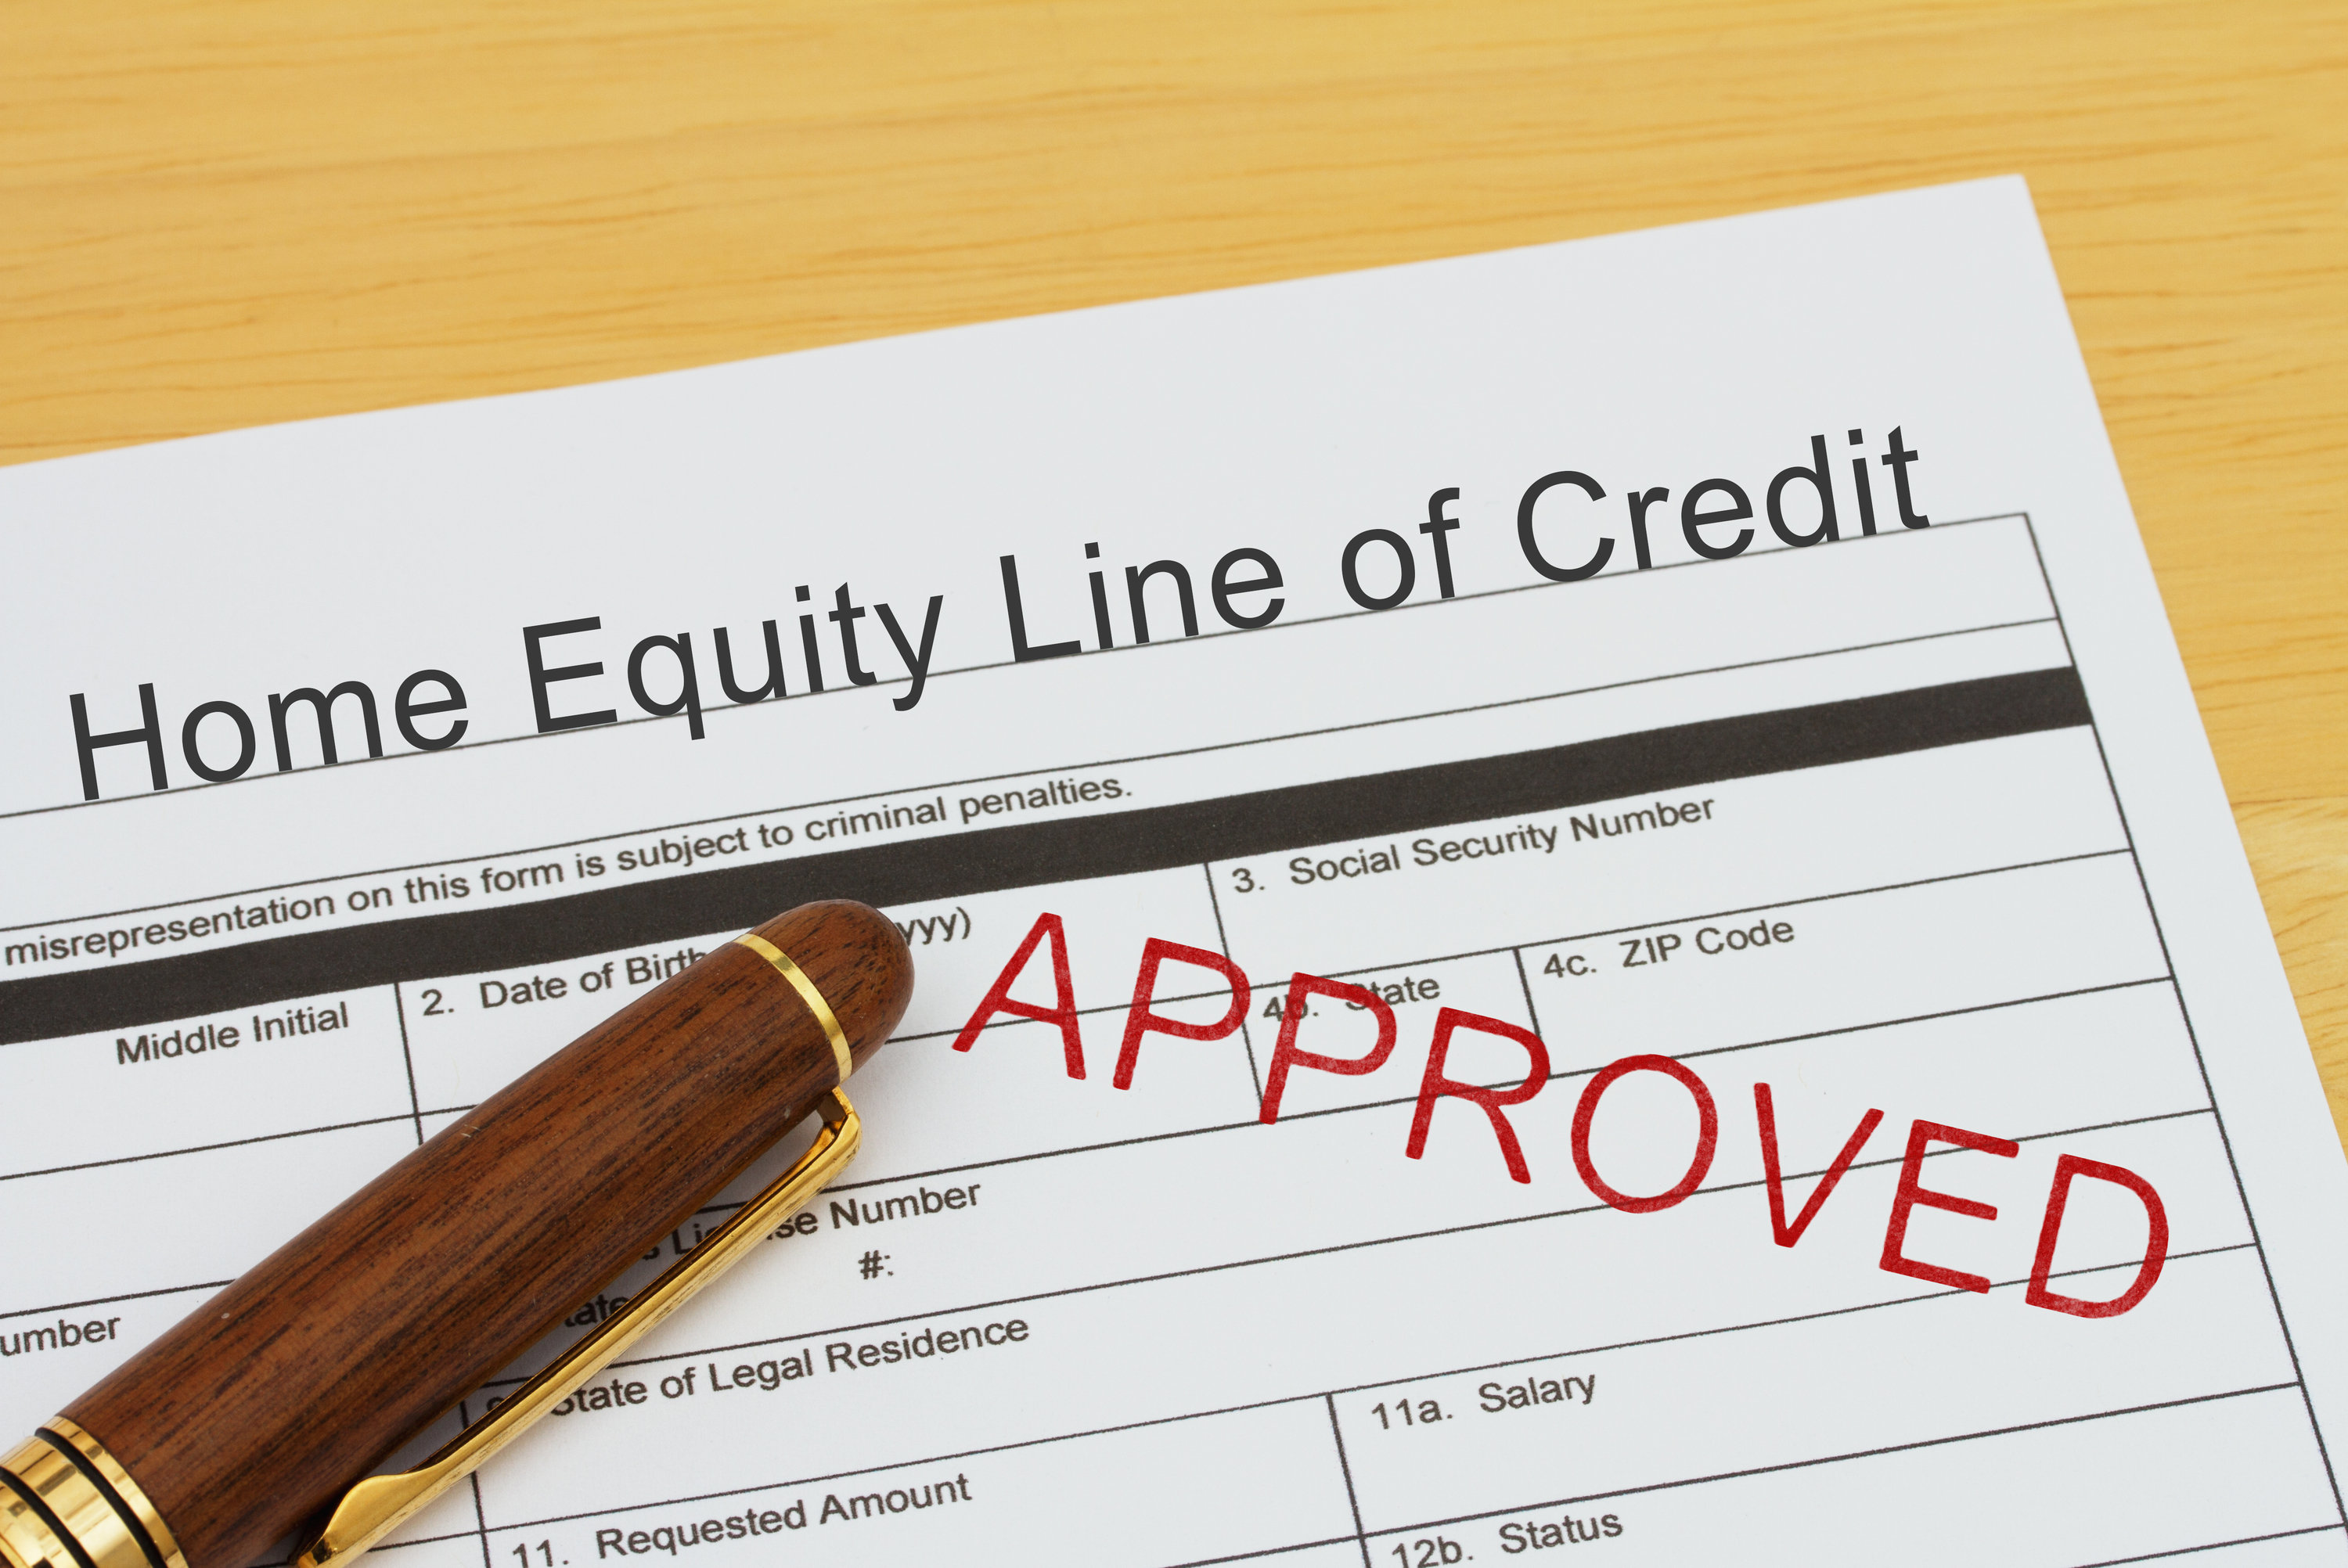 Apply for business line of credit online